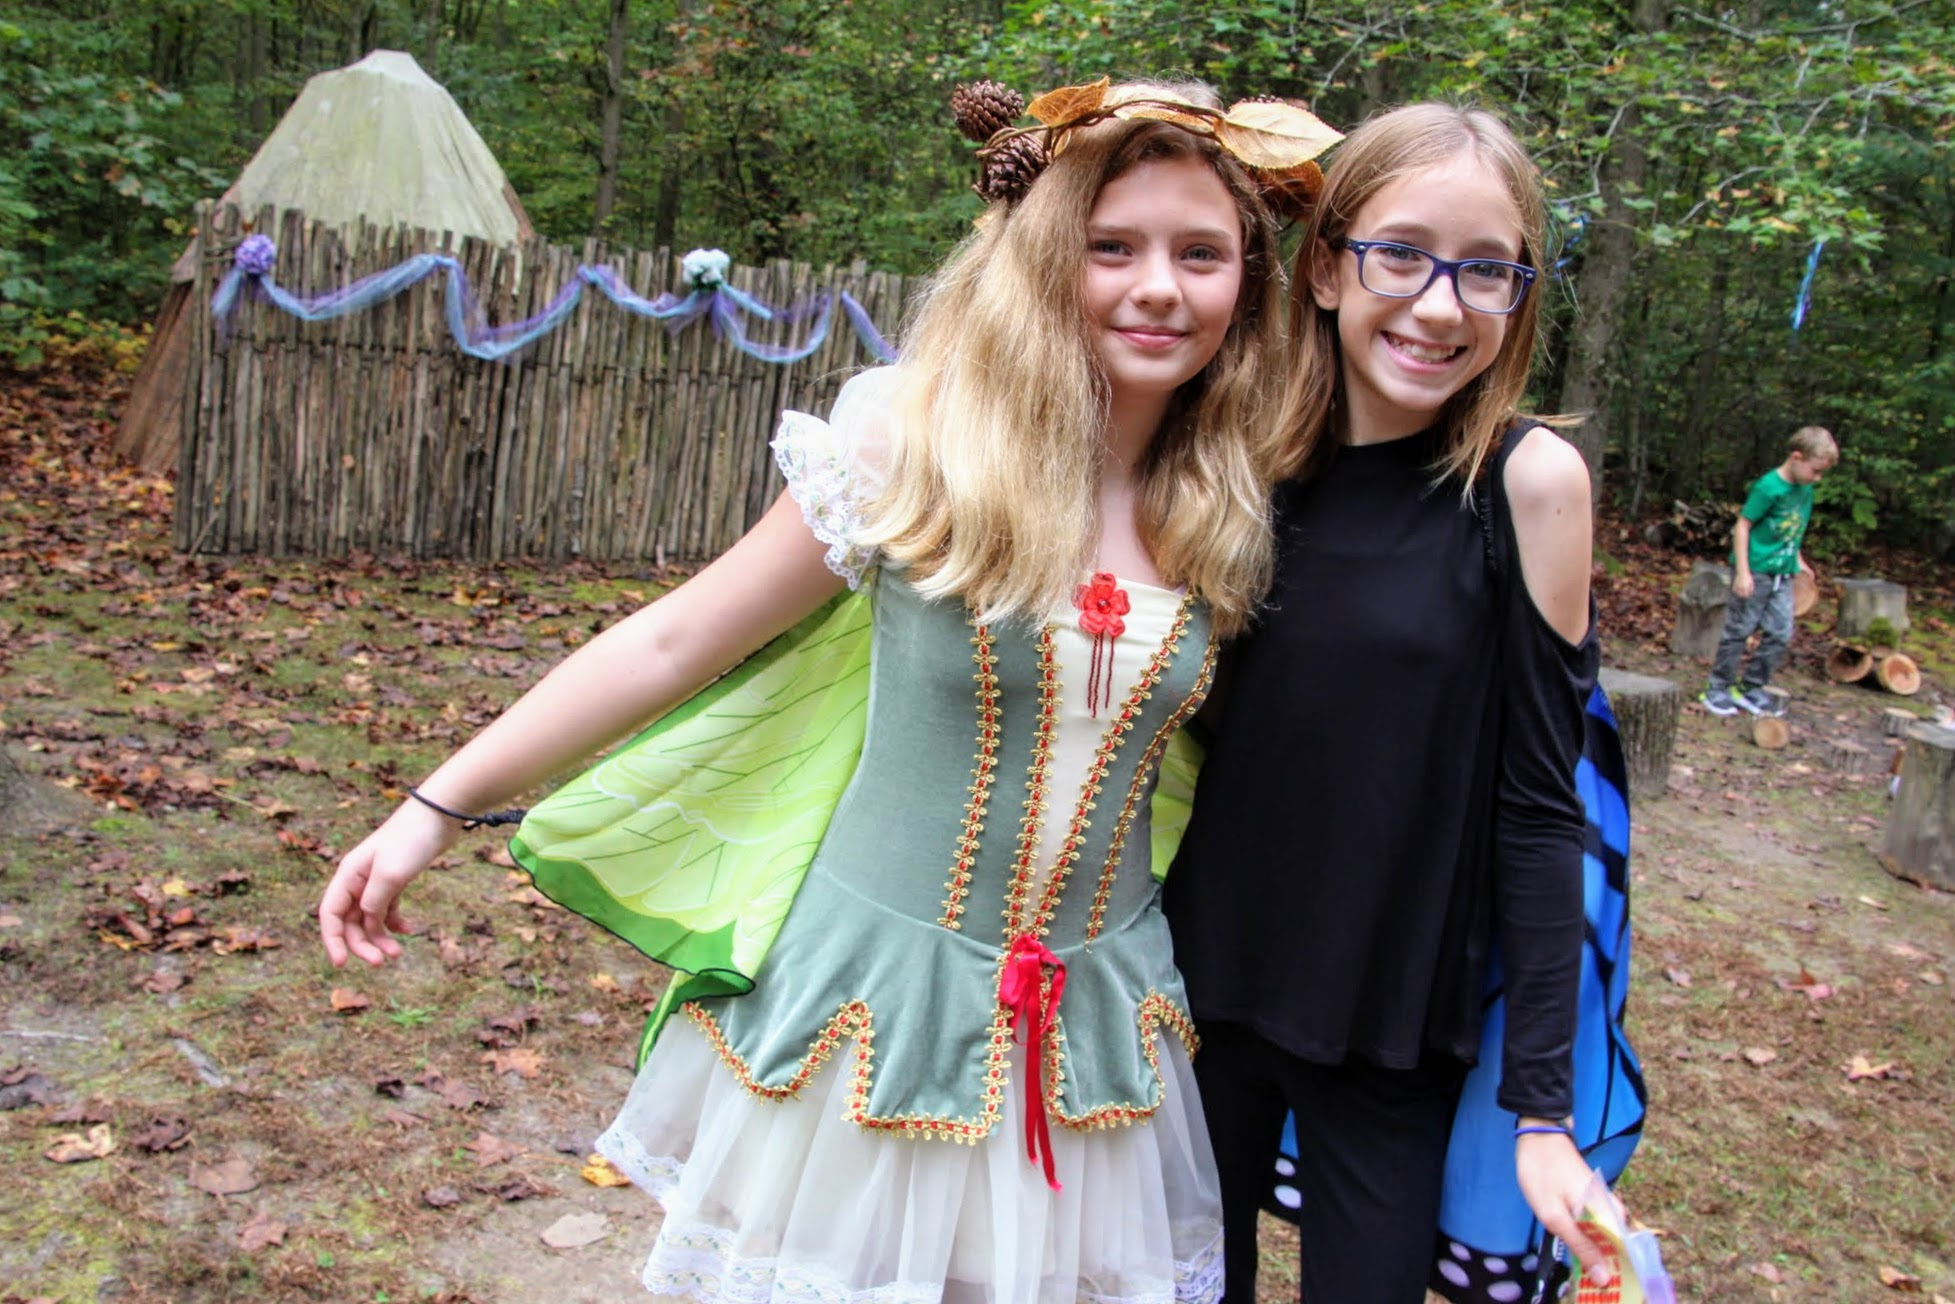 Bring Your Wings For A Day Of Magic At Adkins Arboretum! The Arboretumu0027s  Third Annual Fairyfest, From 11 A.m. To 3 P.m. On Sat., Oct. 13, Celebrates  Fancy, ...